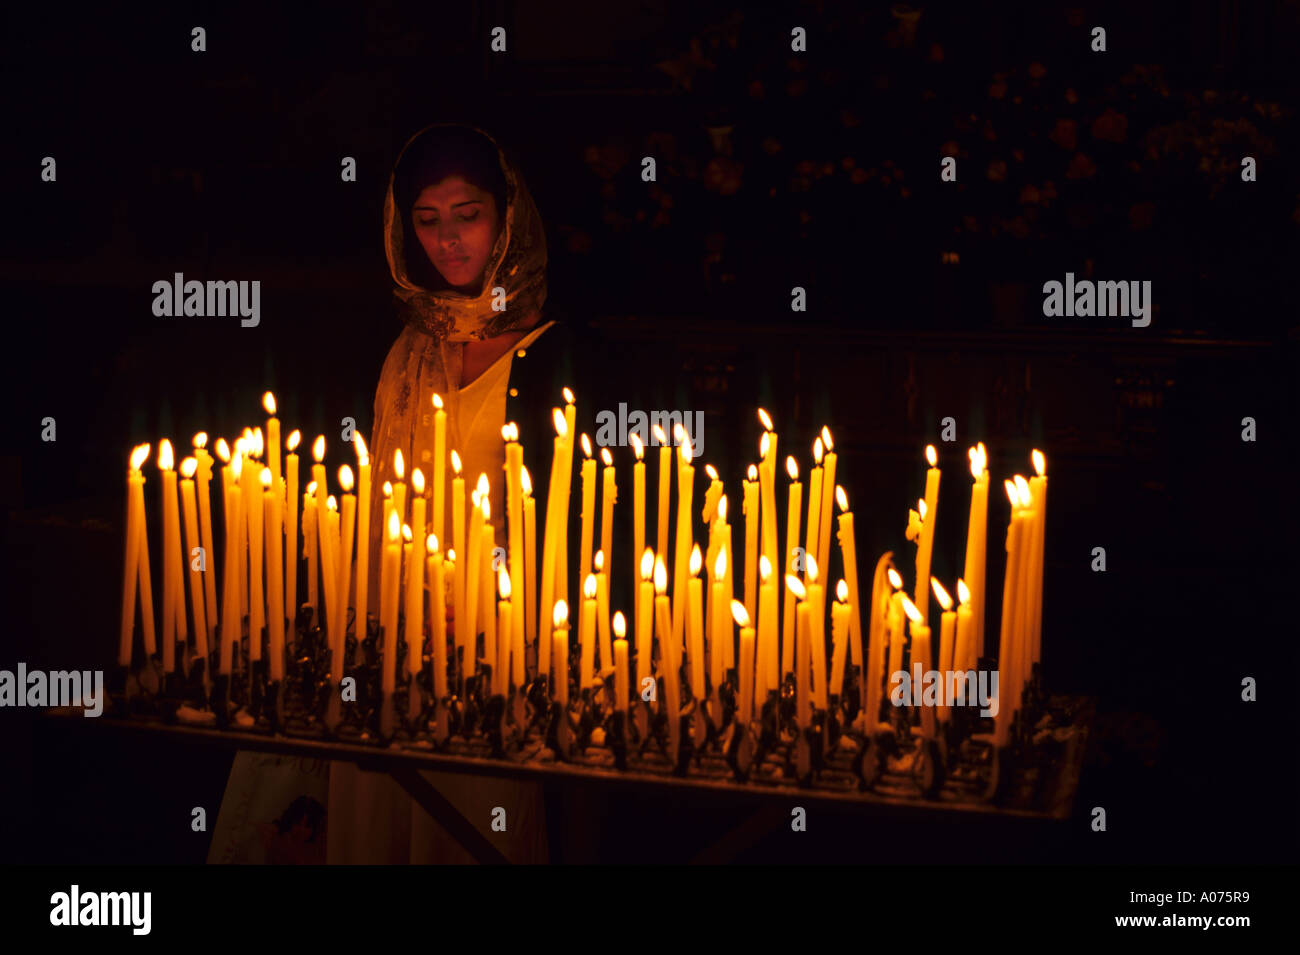 https www alamy com a woman lighting prayer candles inside a catholic church in italy image5658424 html